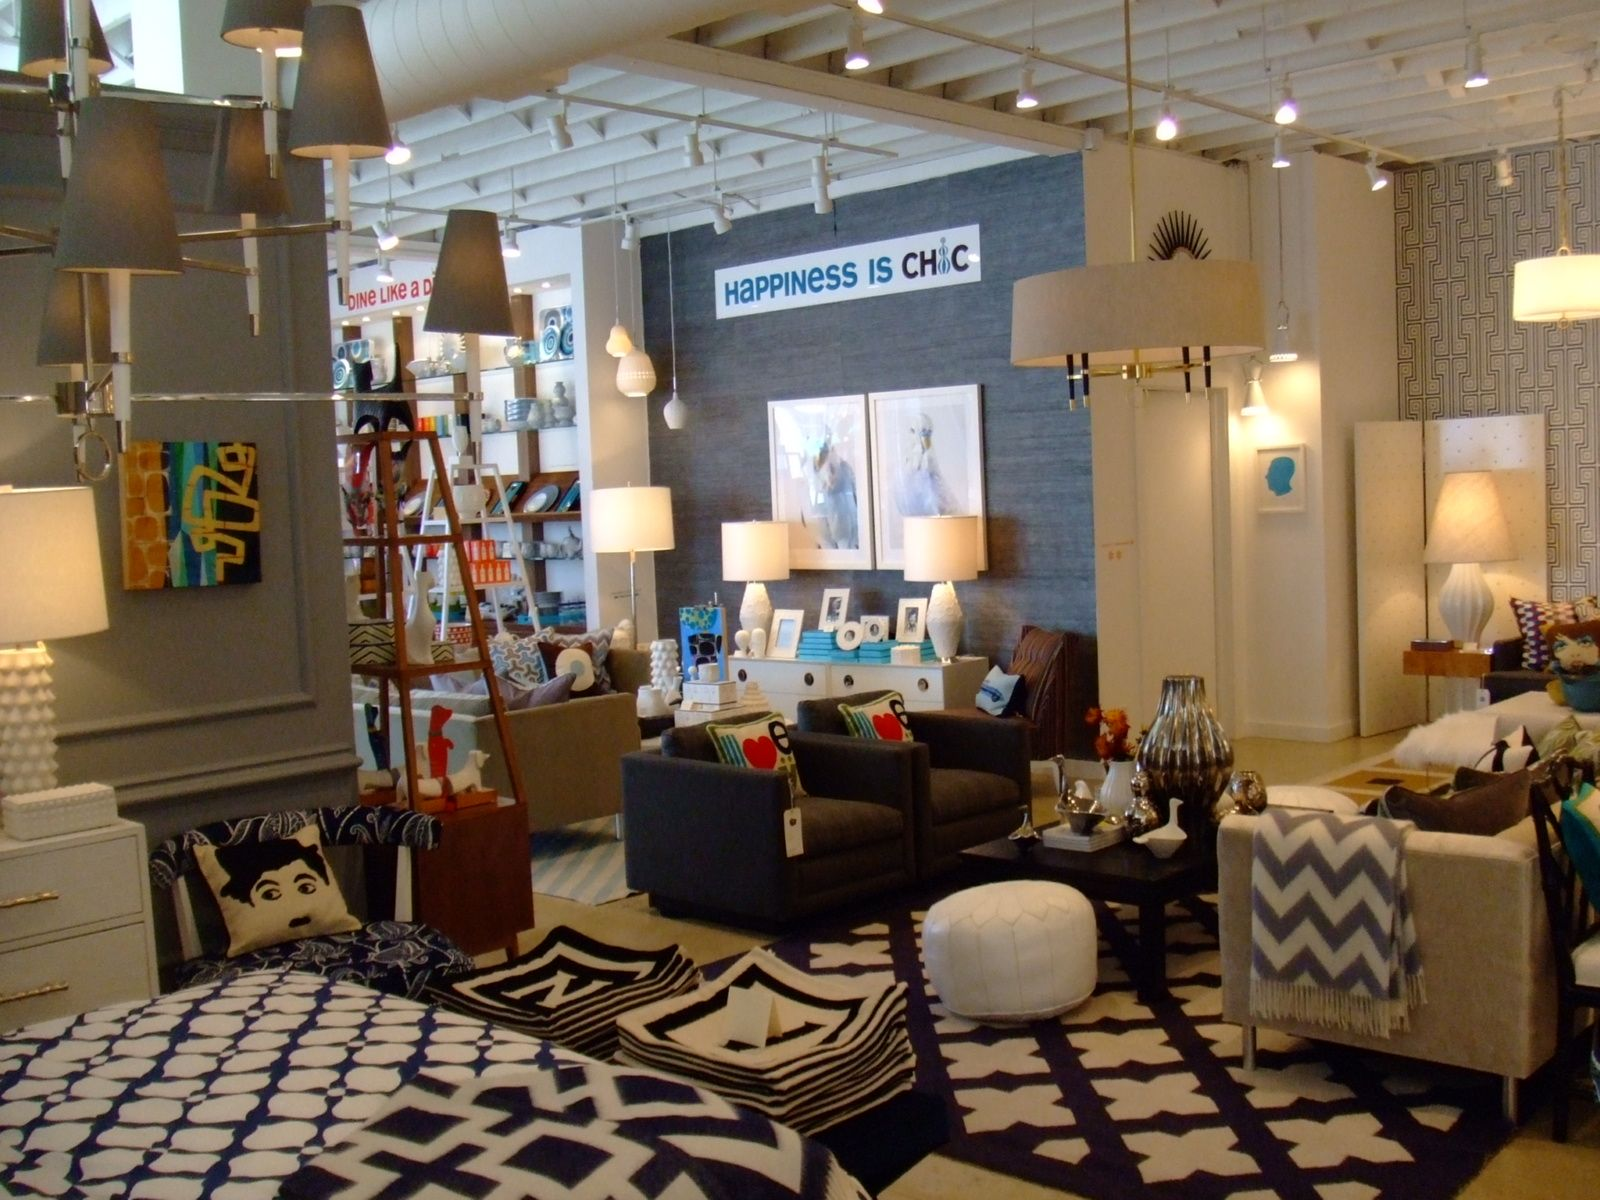 Marvelous Jonathan Adler Furniture Sale #11: 1000+ Images About Visual Merchandising On Pinterest   Jonathan Adler, Retail And Crates